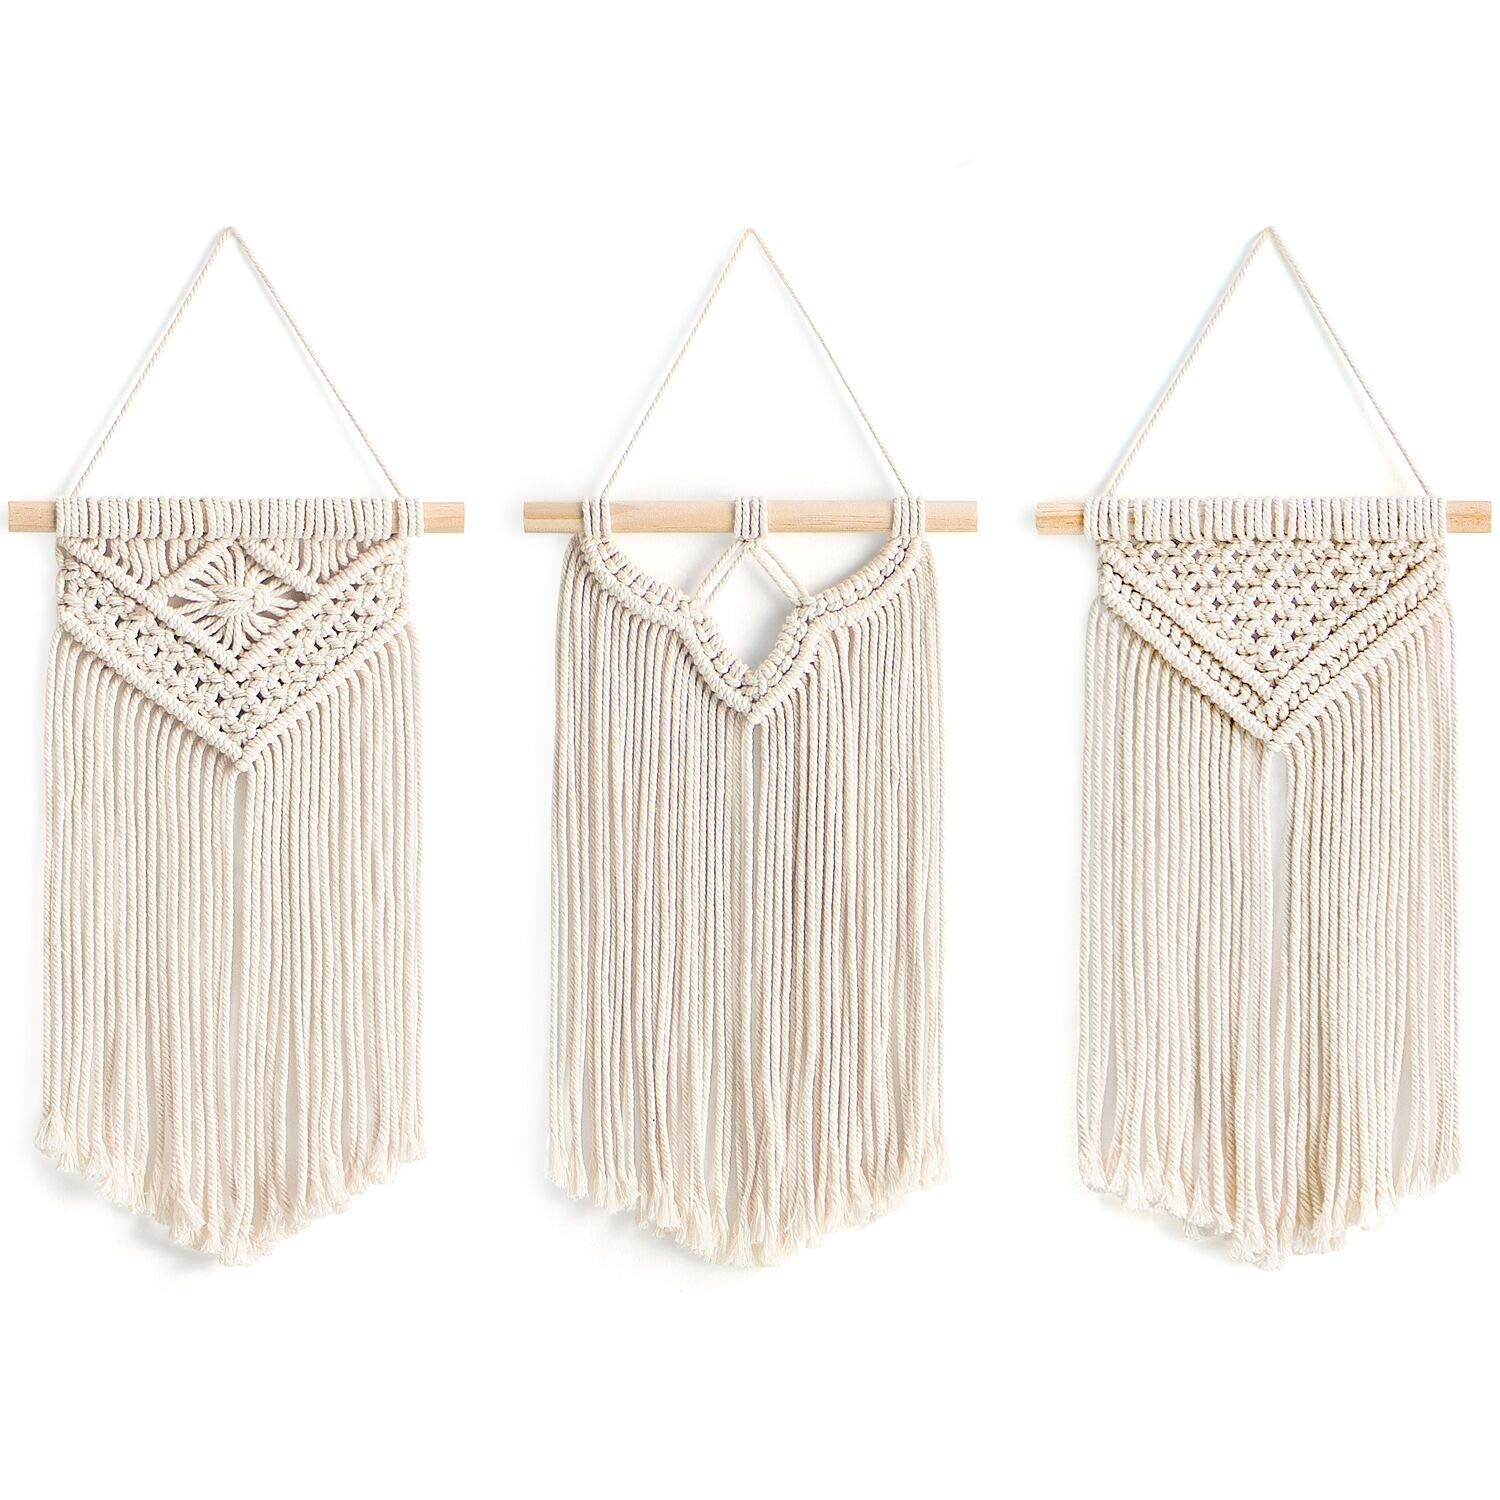 "Mkono Small Macrame Wall Hanging, 3 Pack Art Woven Wall Decor Boho Chic Home Decoration for Apartment Bedroom Living Room Gallery, 8"" Wx 14"" L"